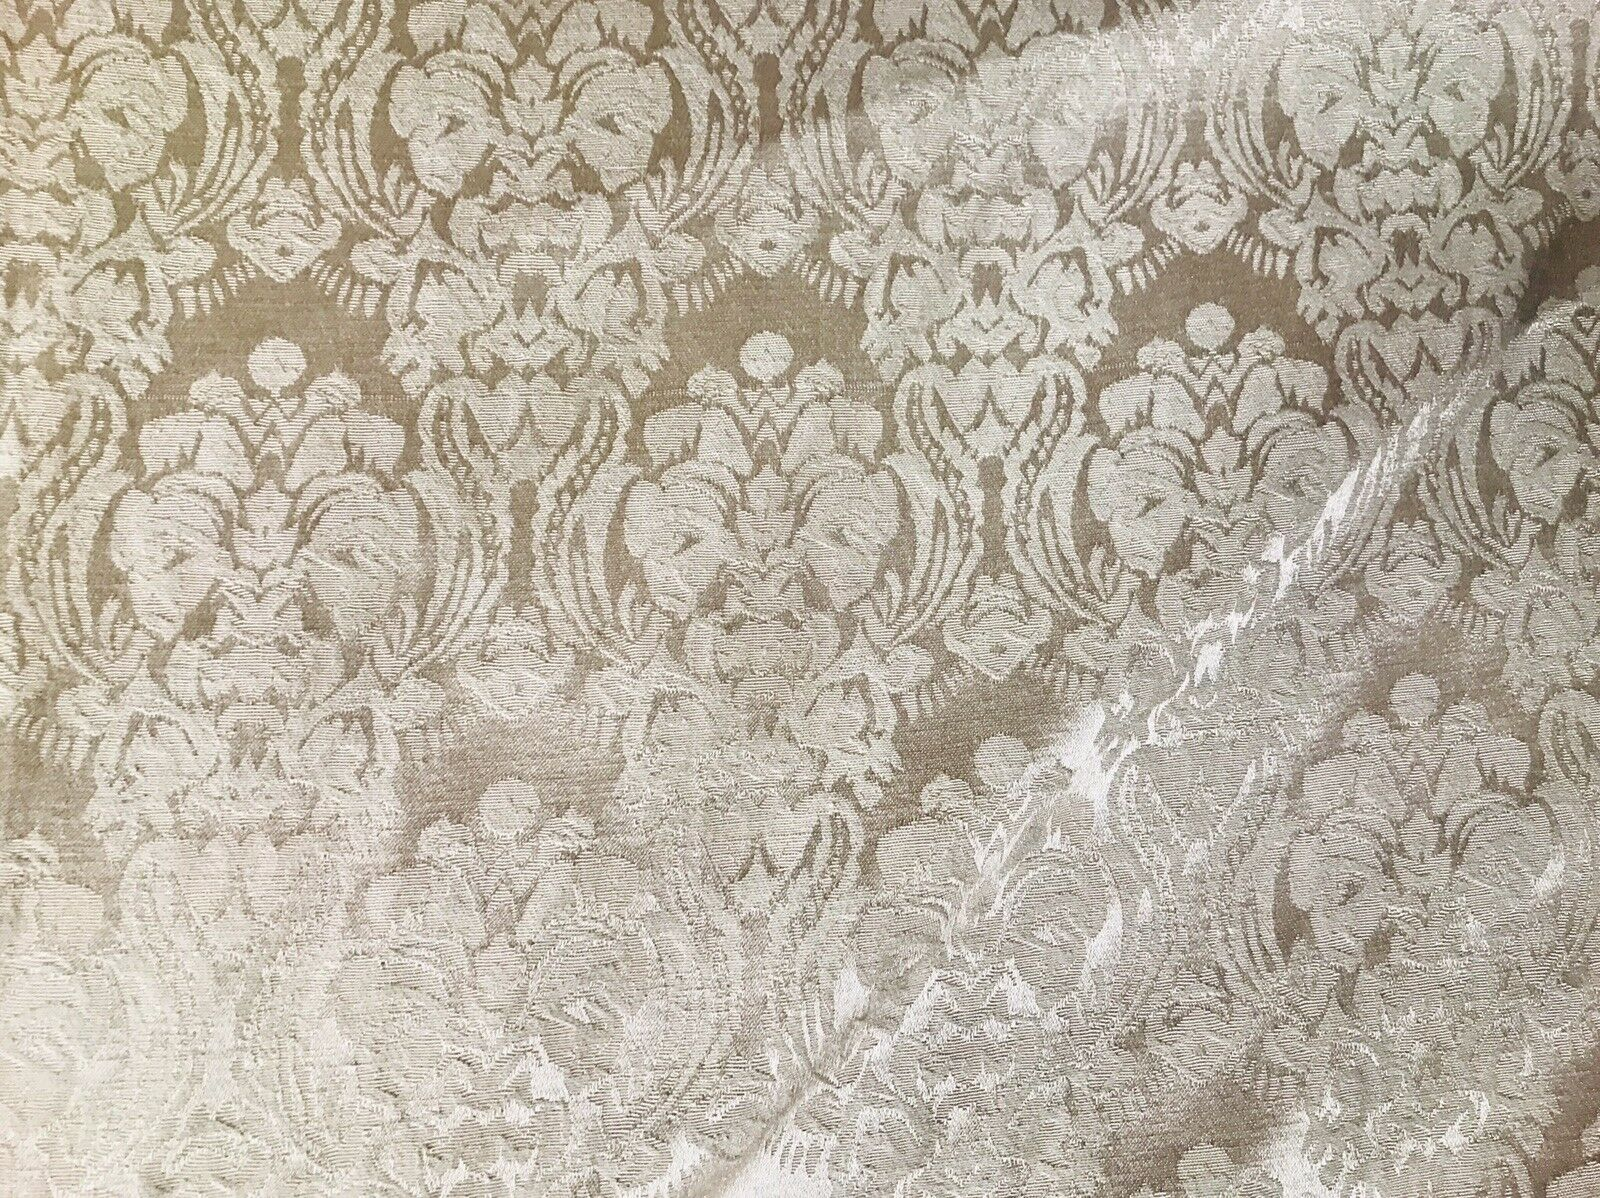 SALE Dophine Elena Designer Brocade Satin Damask Fabric- Antique Rose Gold- By The yard